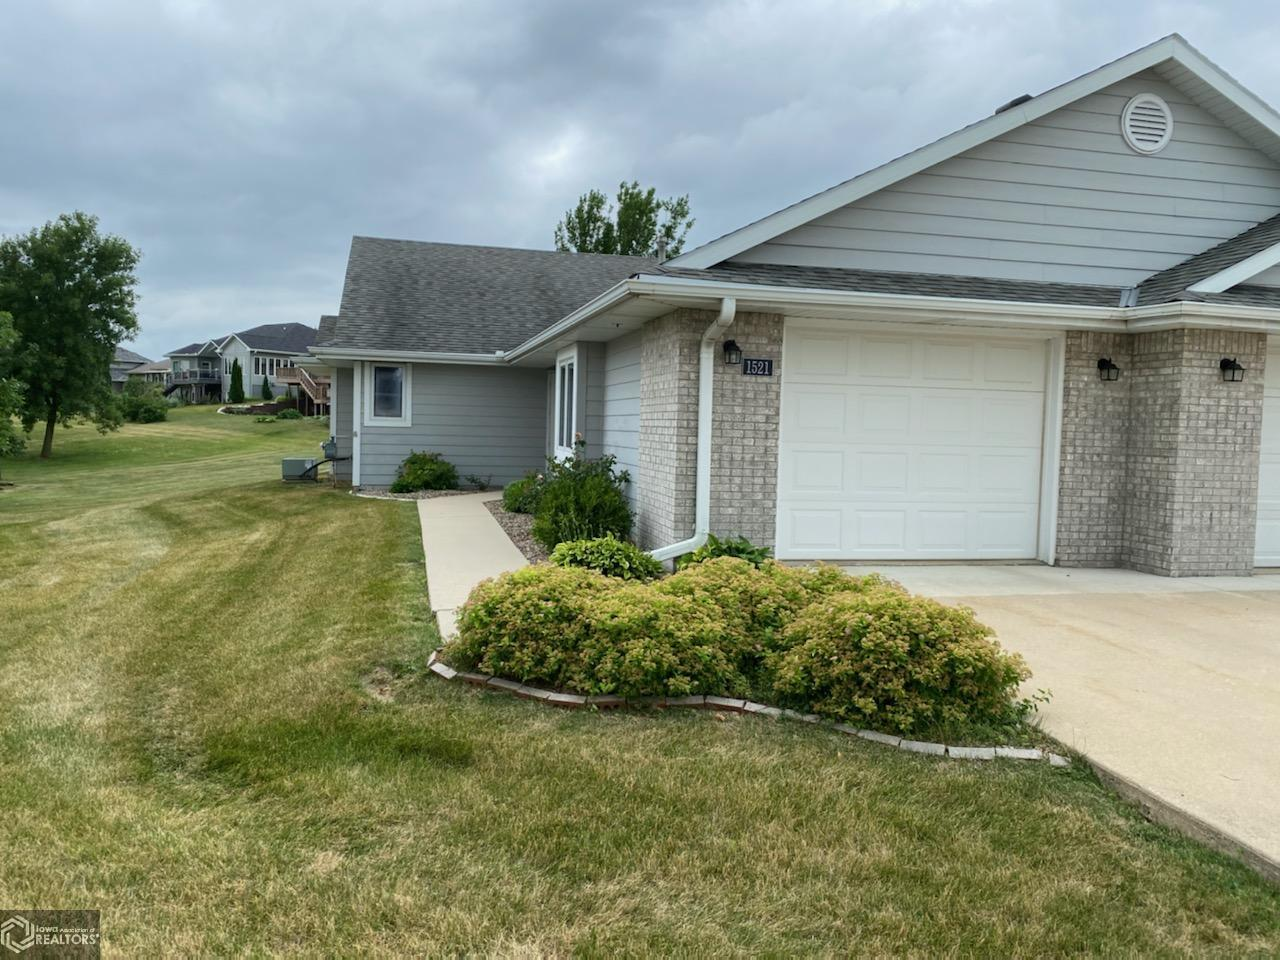 1521 18th Property Photo - Atlantic, IA real estate listing